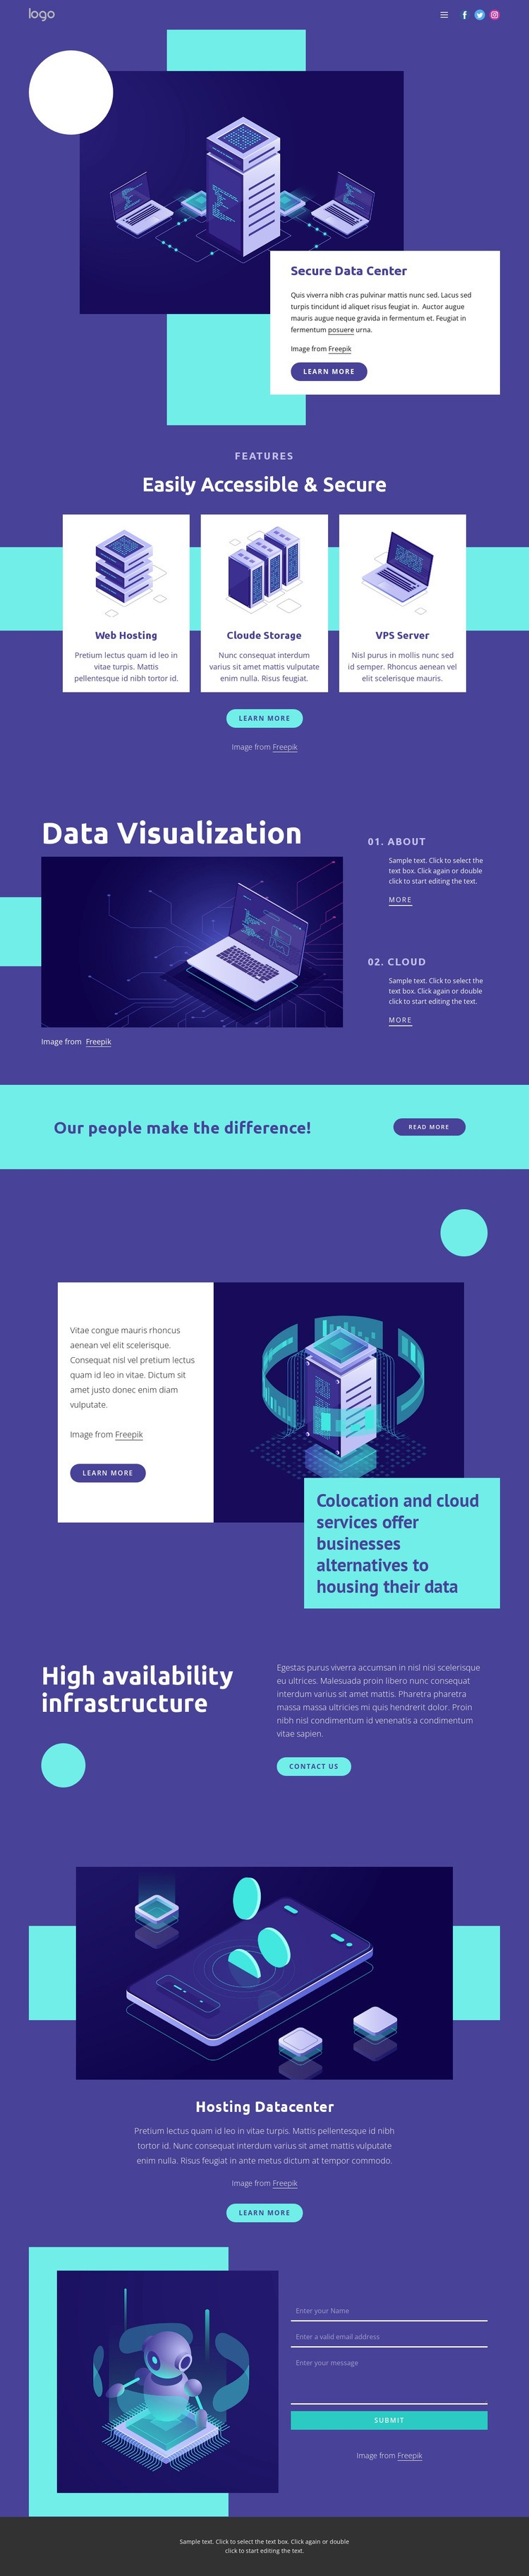 Data Center security solutions Web Page Designer